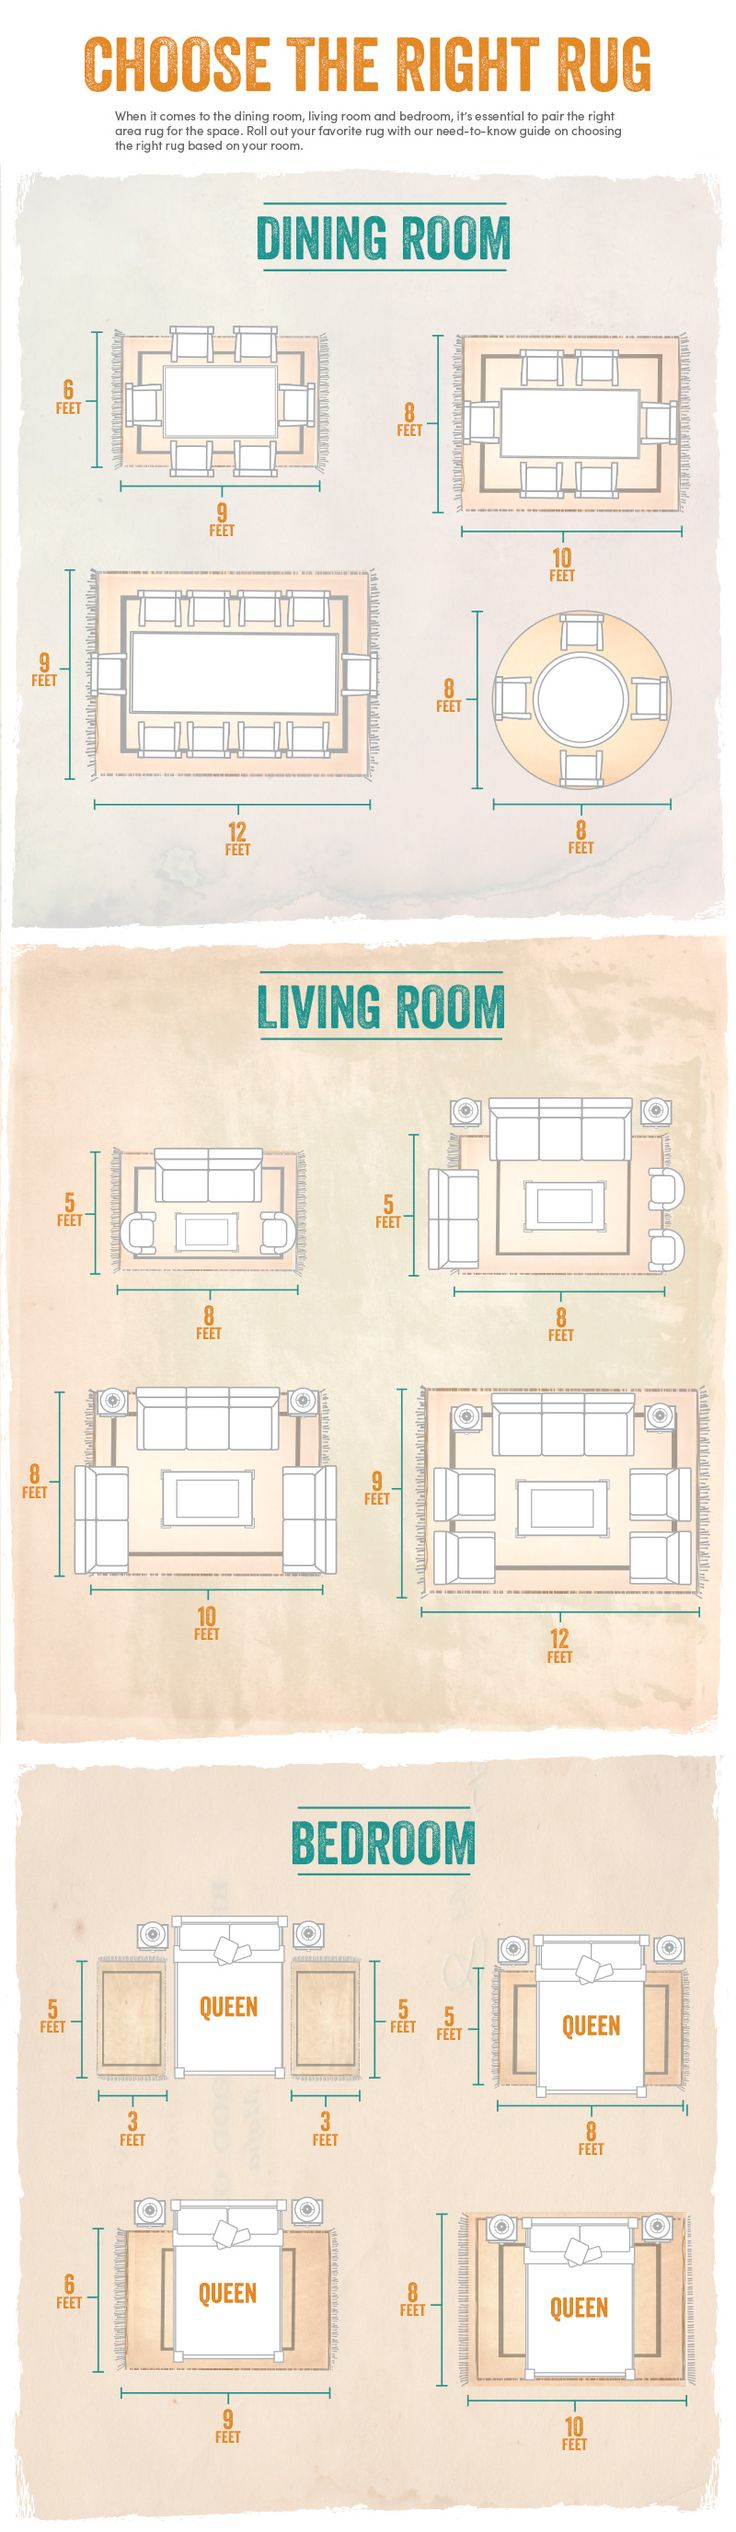 Bedroom Furniture Arrangement best 20+ furniture layout ideas on pinterest | furniture